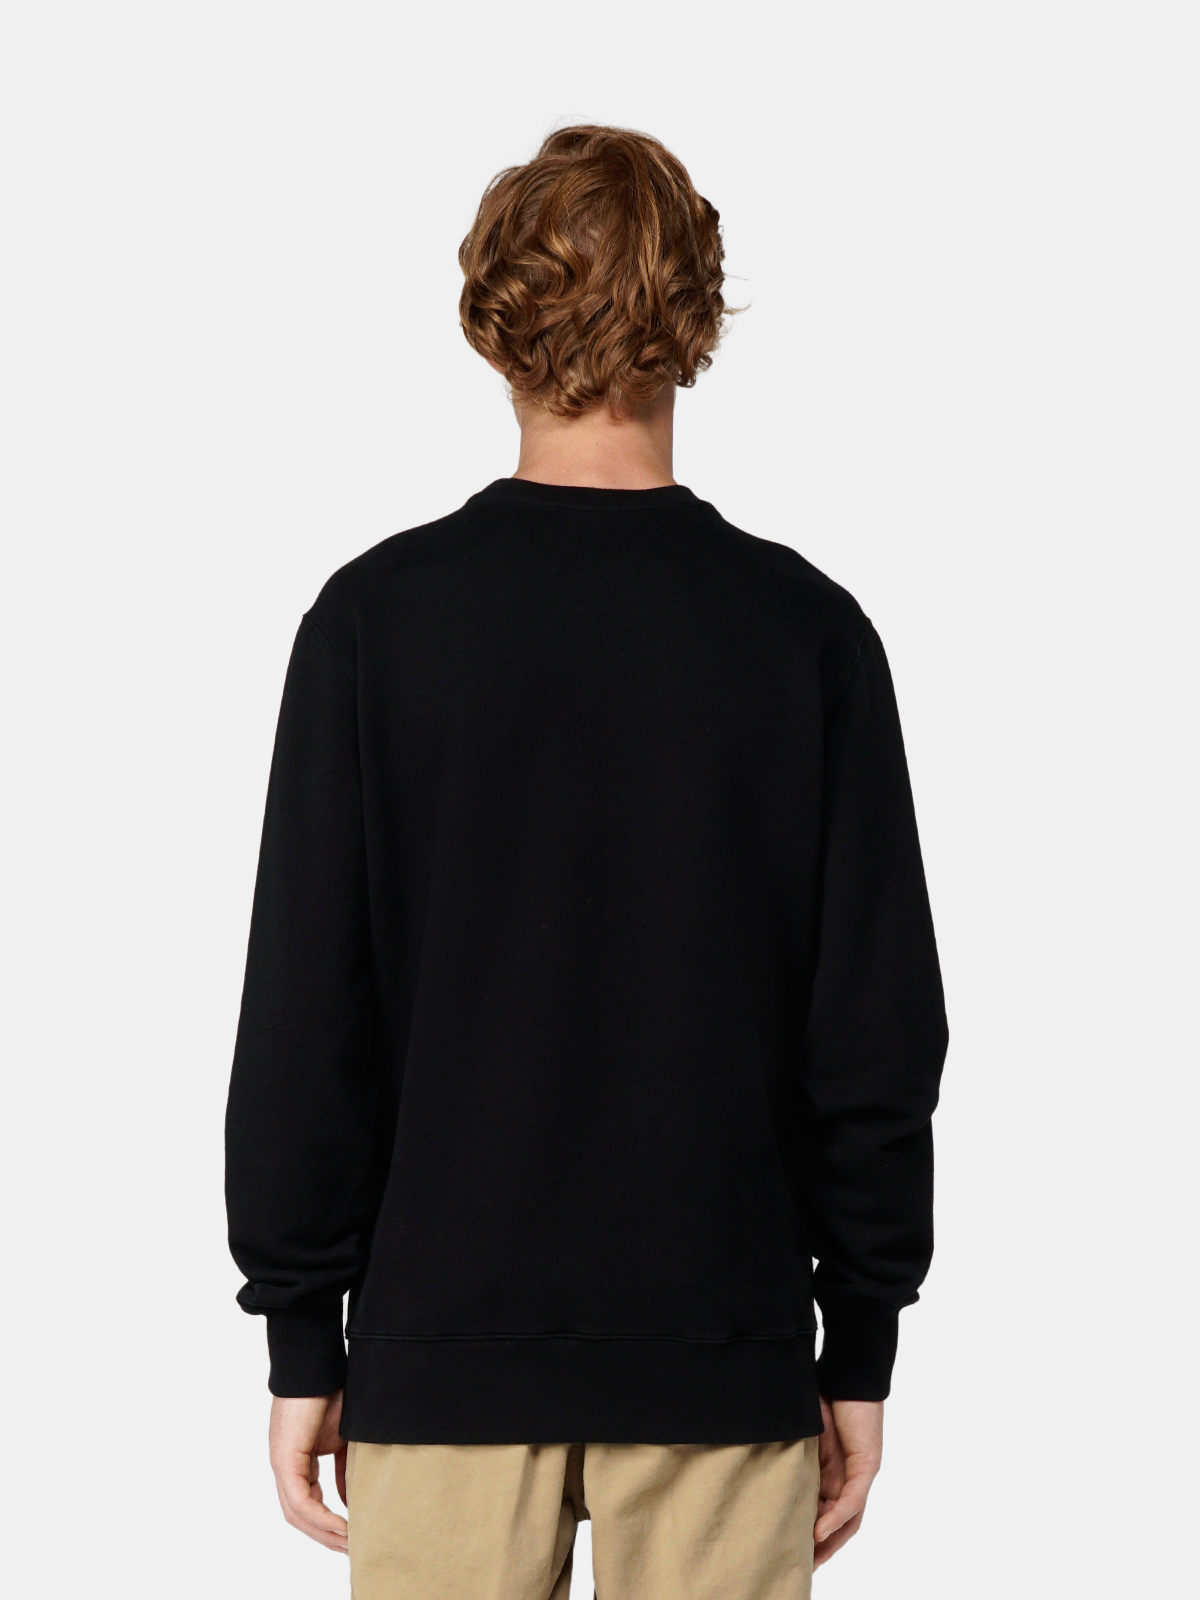 Golden Goose - Black Archibald sweatshirt with flag print on the front in